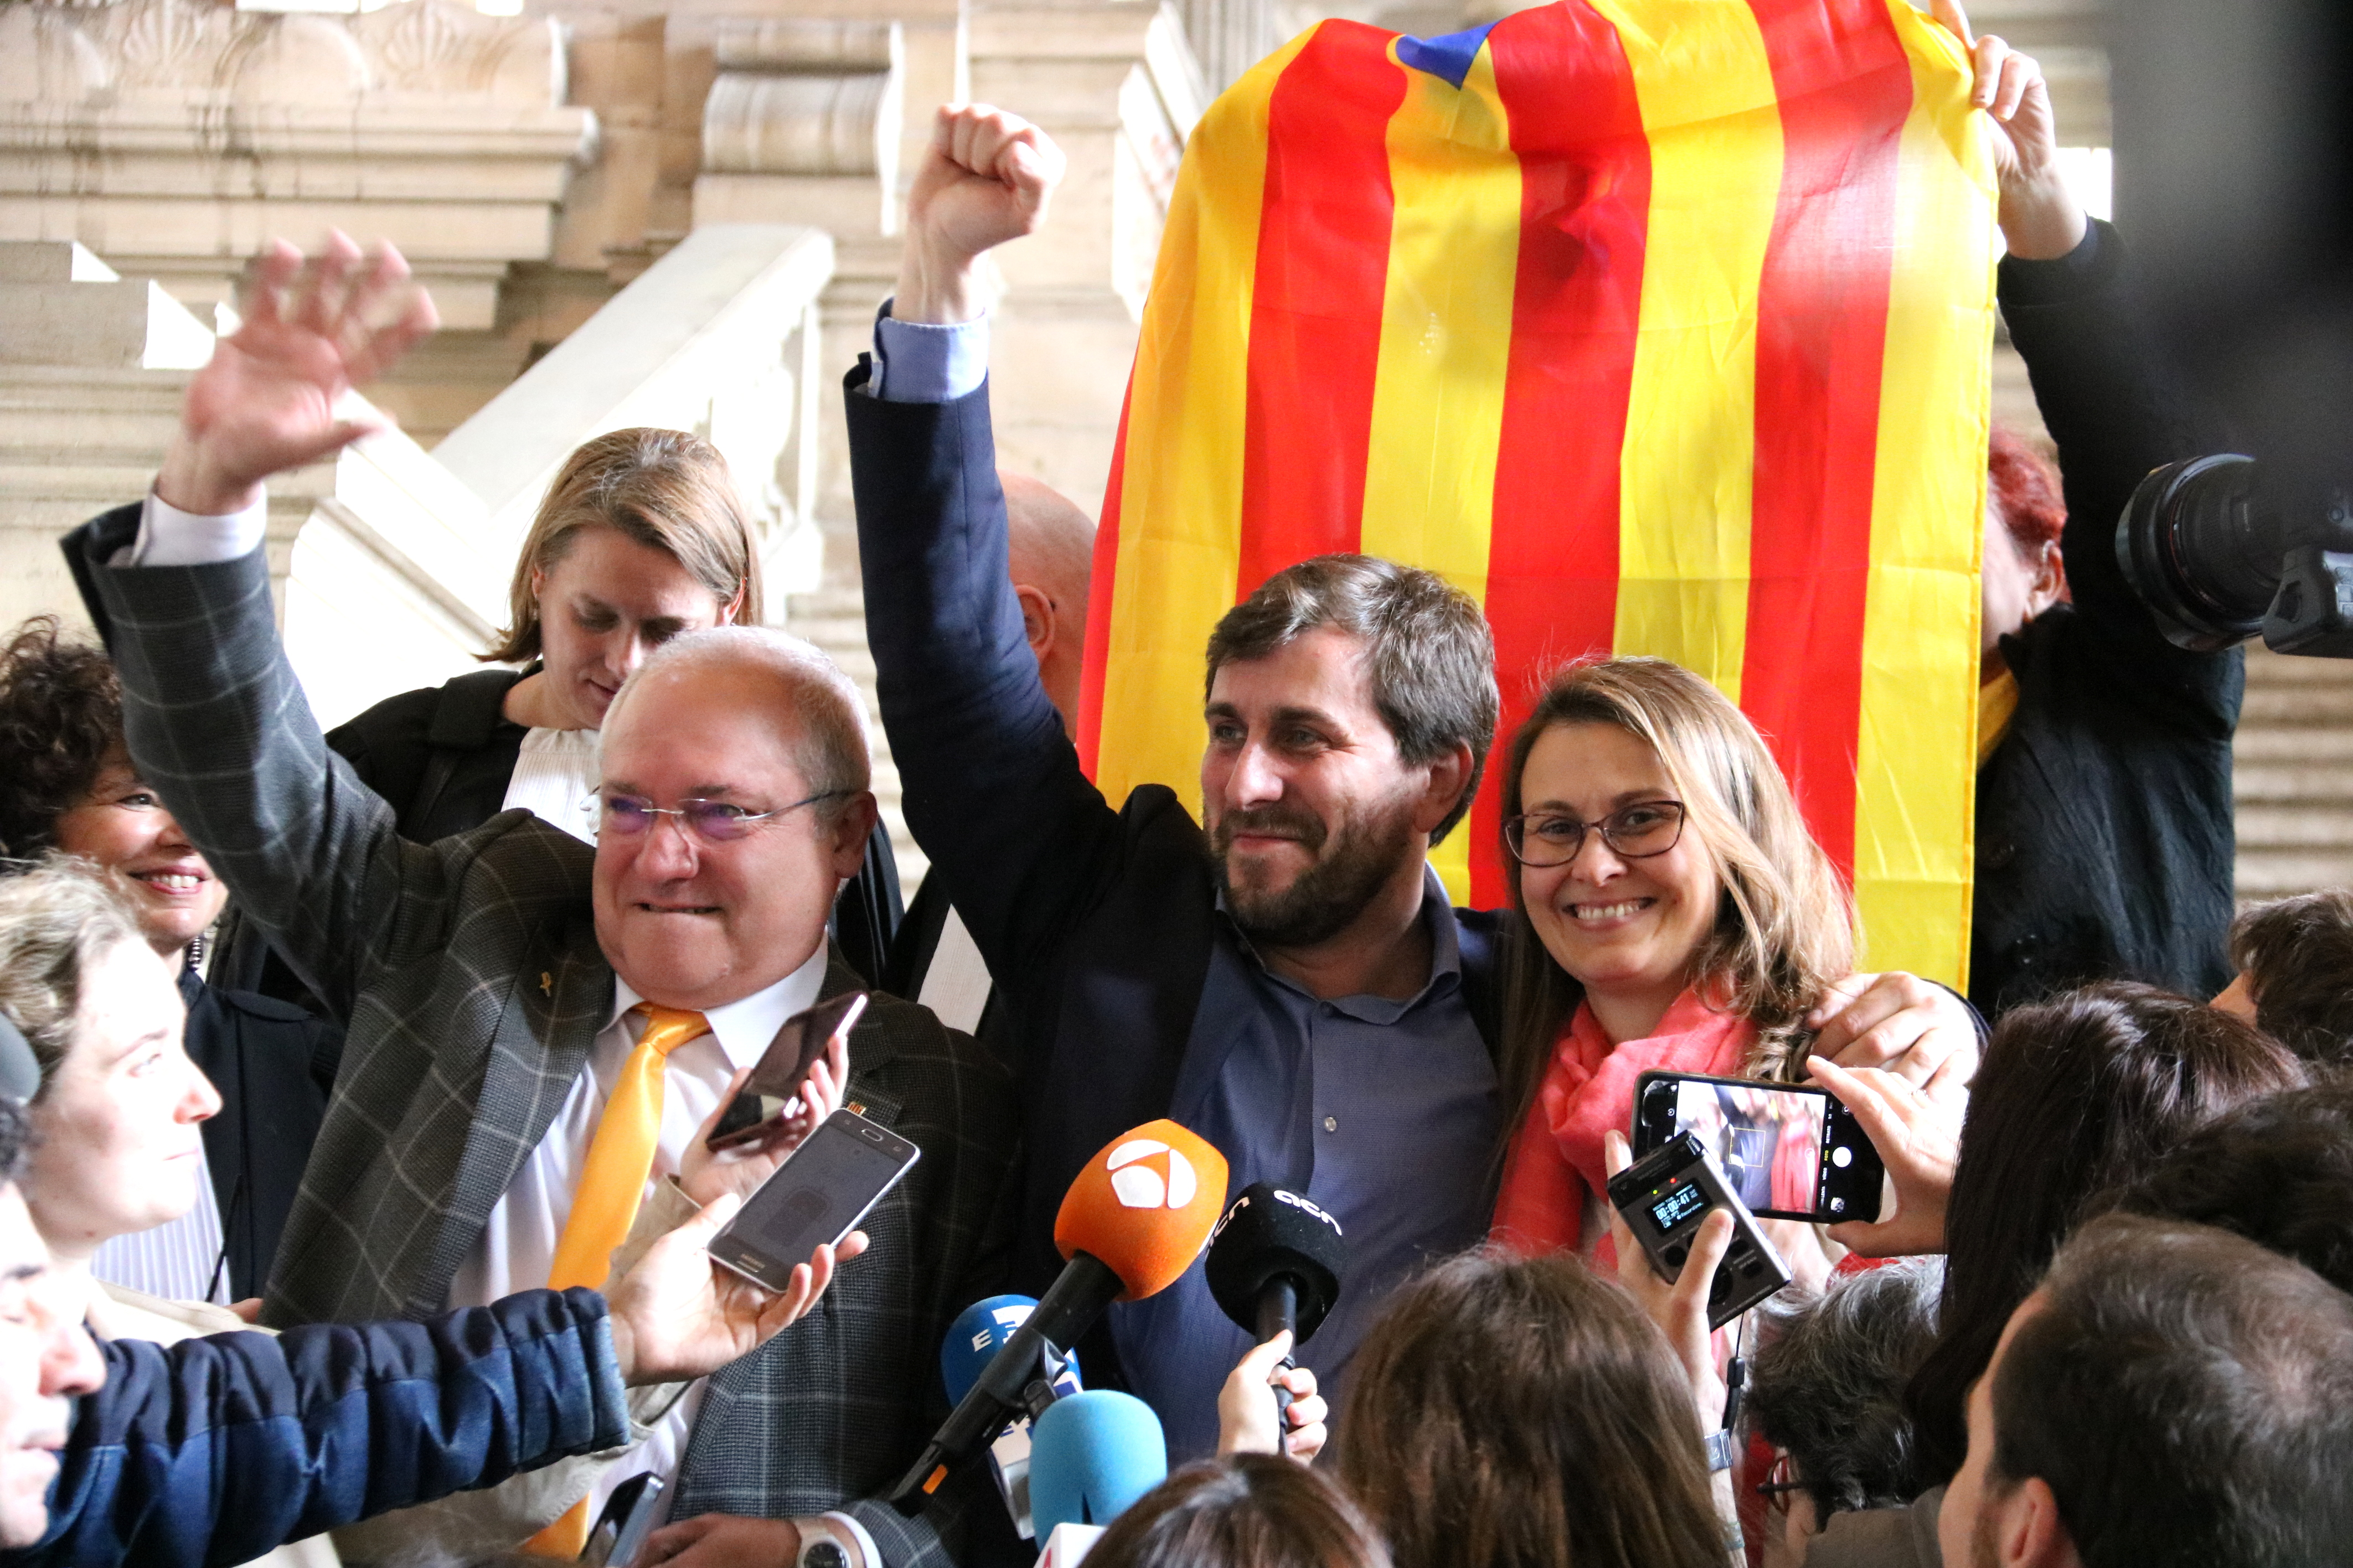 Former Catalan ministers Lluís Puig, Toni Comín and Meritxell Serret, after a court in Brussels rejected extraditing them to Spain (by Blanca Blay)